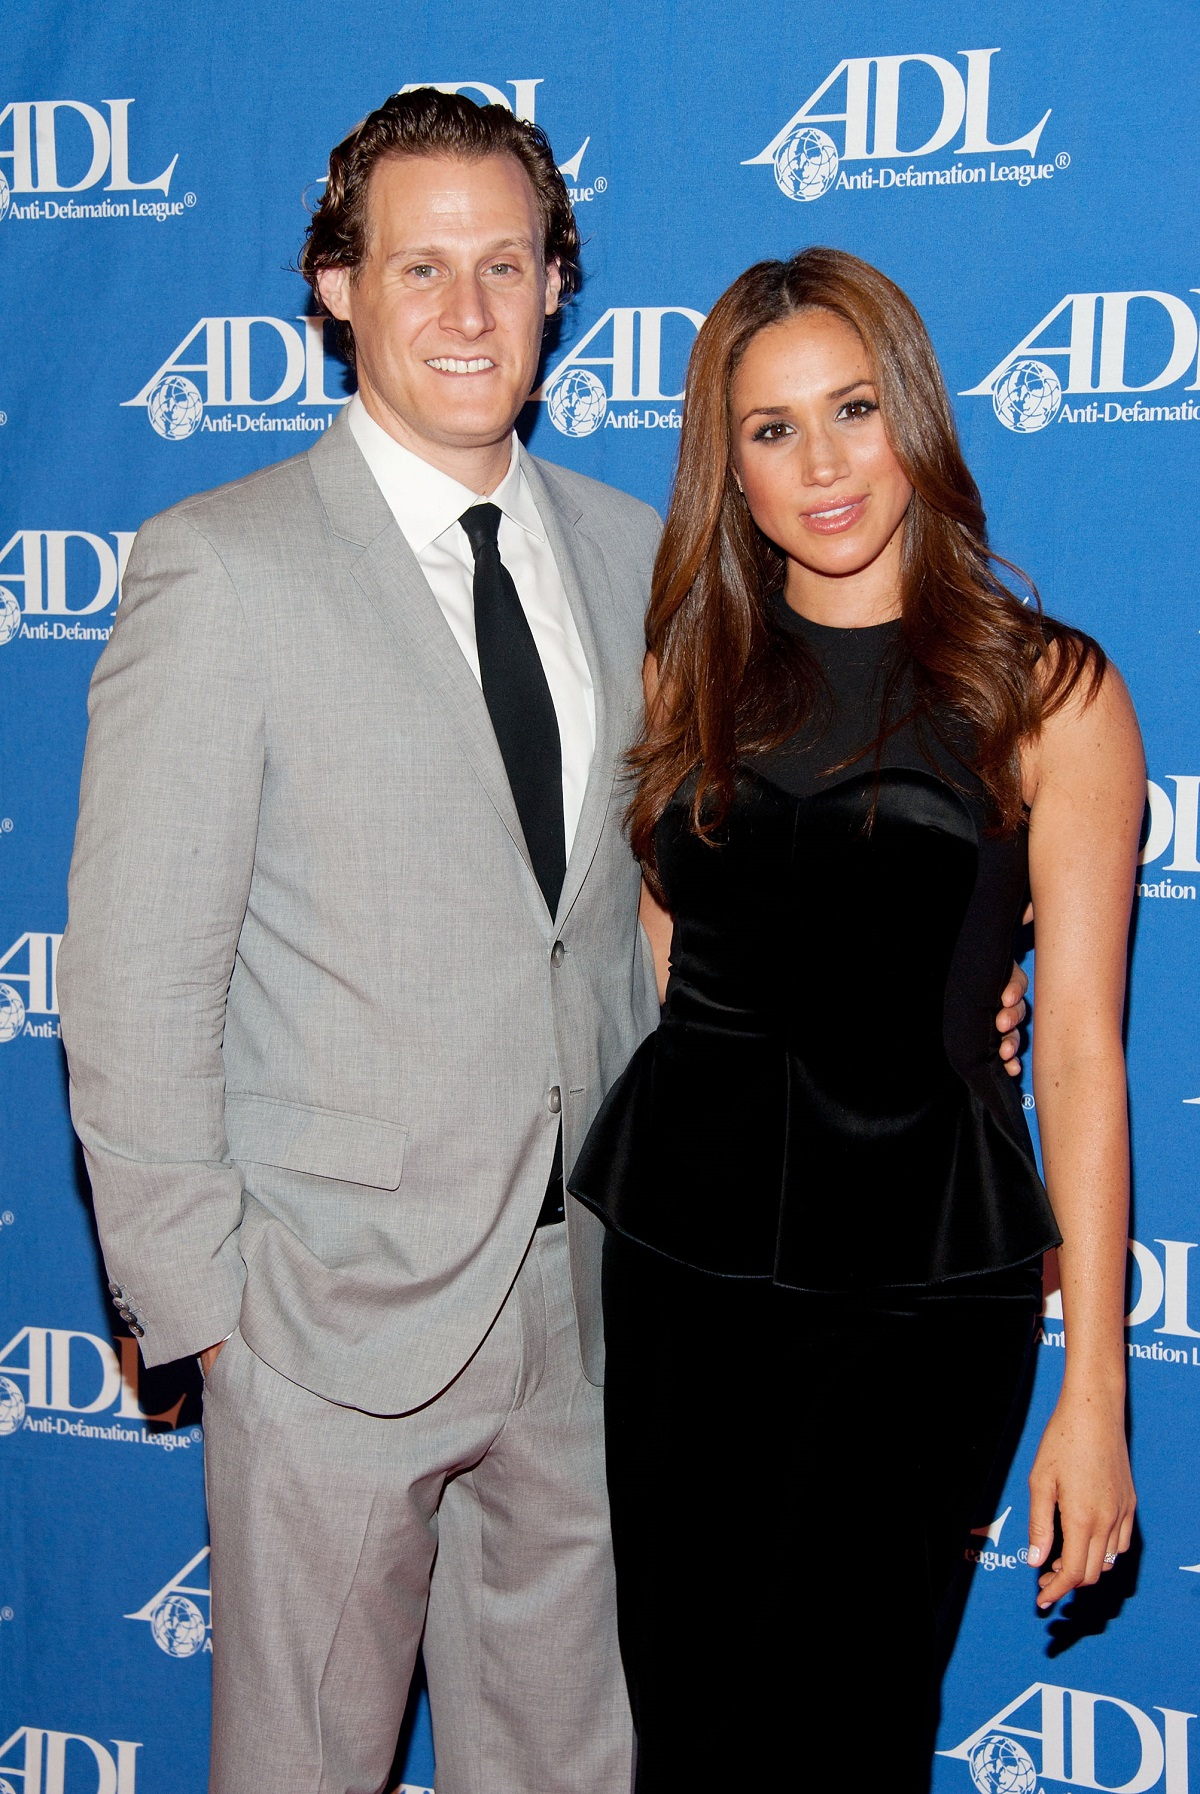 Meghan Markle and her husband Trevor Engelson on the red carpet at the Anti-Defamation League Entertainment Industry Awards Dinner at the Beverly Hilton on October 11, 2011 in Beverly Hills, California